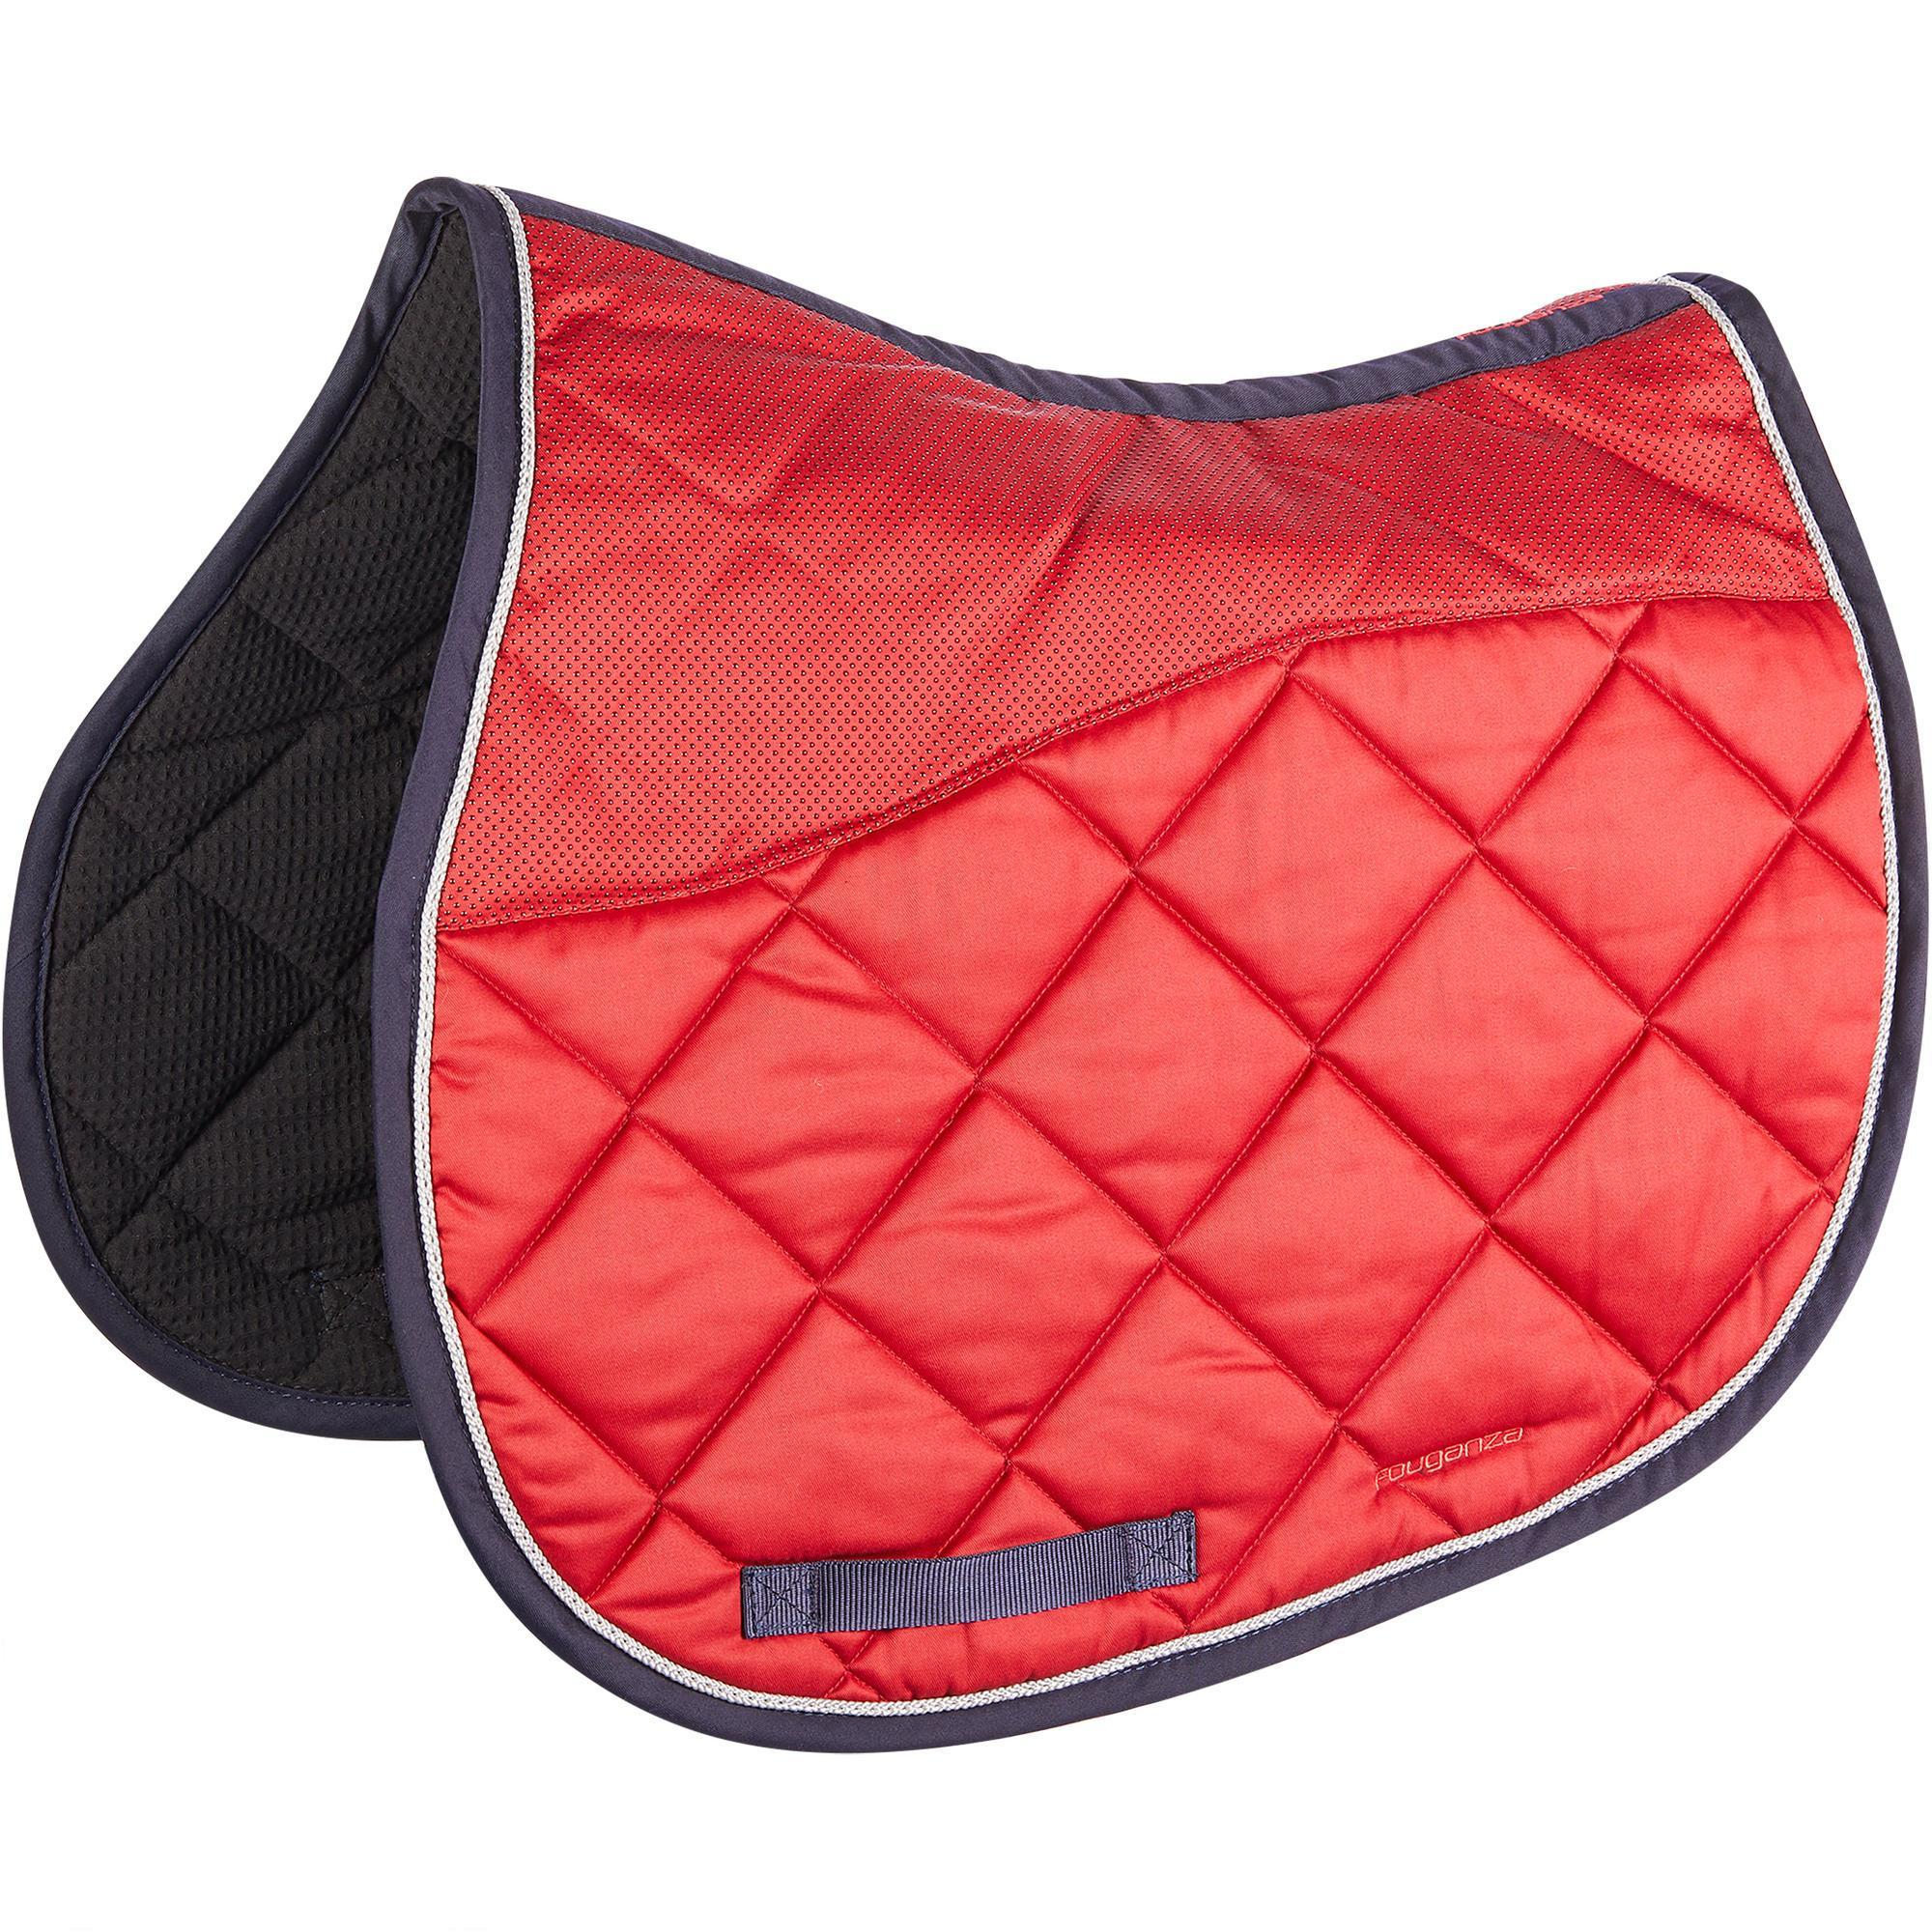 tapis de selle equitation cheval 540 rouge fouganza With tapis d équitation rouge